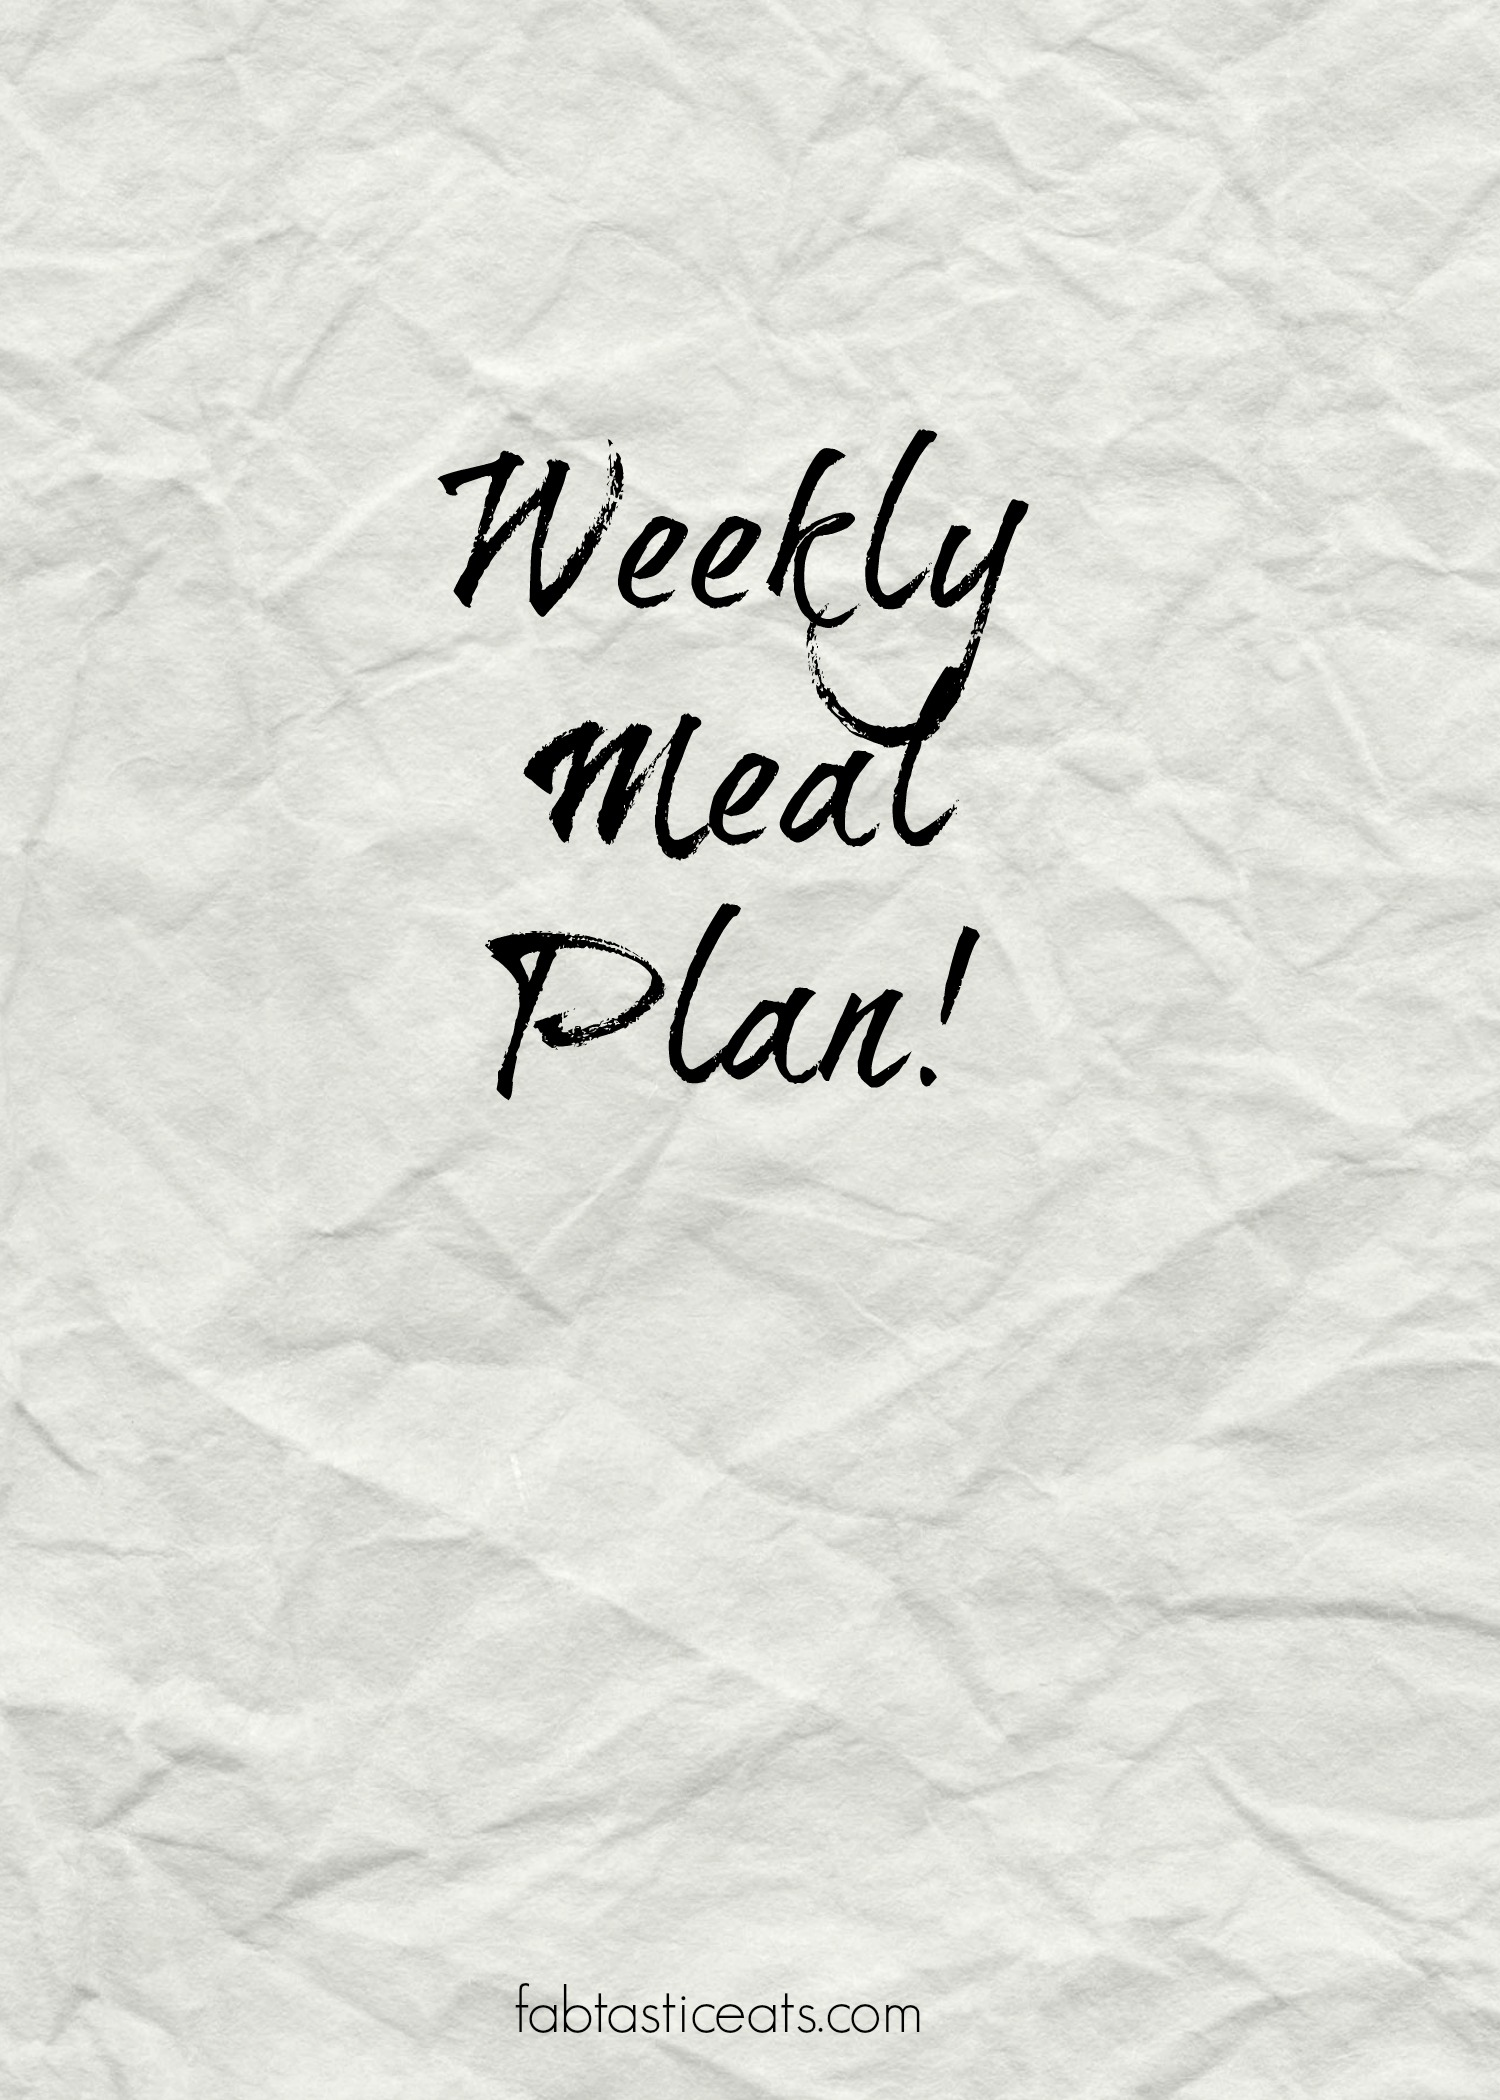 Weekly Meal Plan | Fabtastic Eats